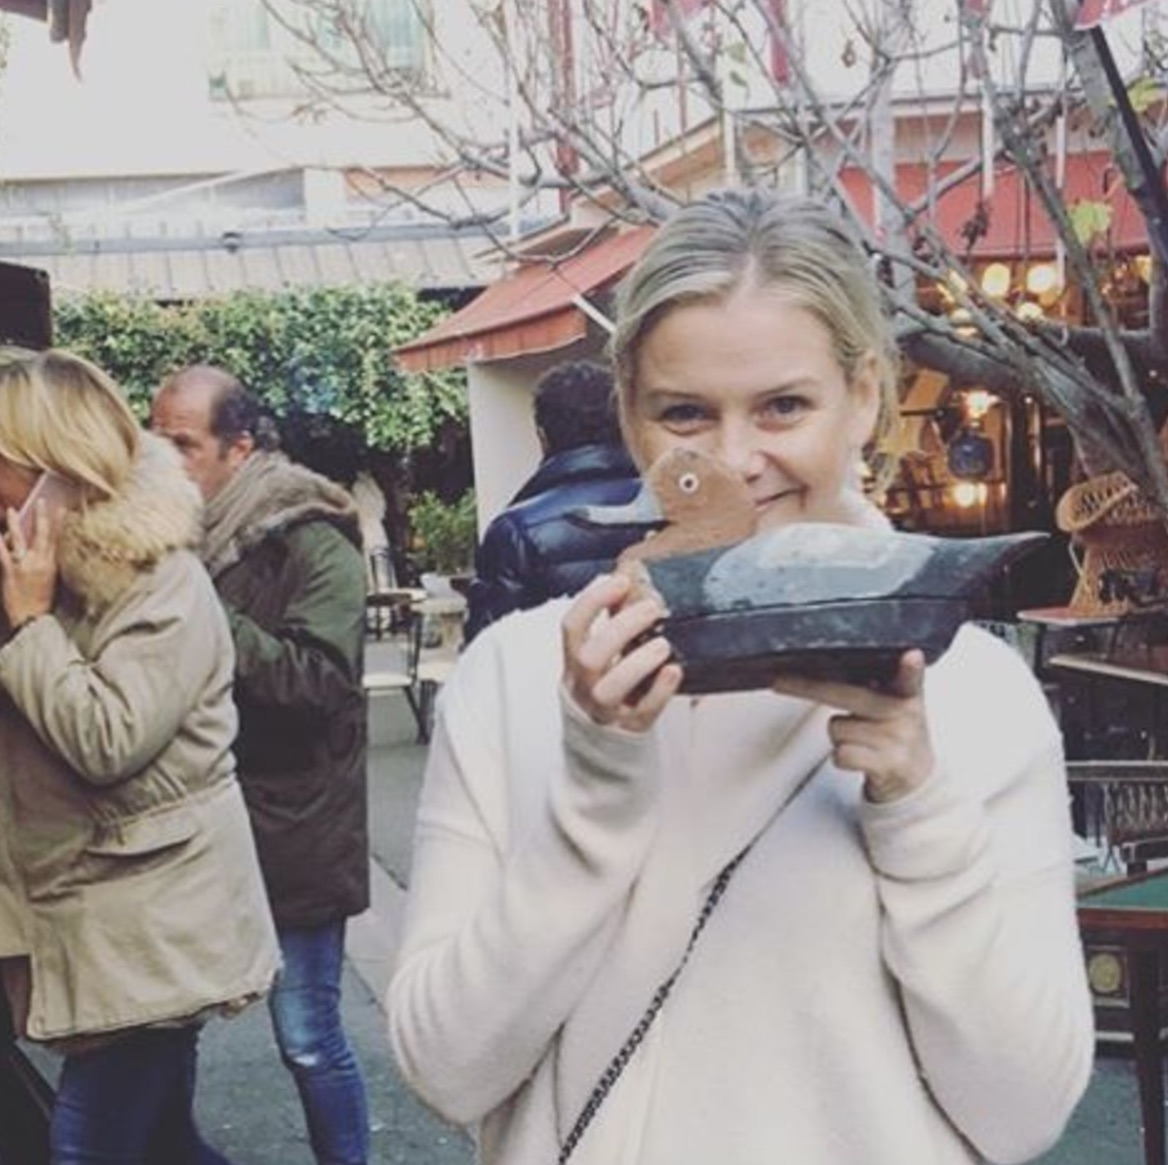 Anna Weinberg poses with a duck decoy, a photo she shared on her Instagram account